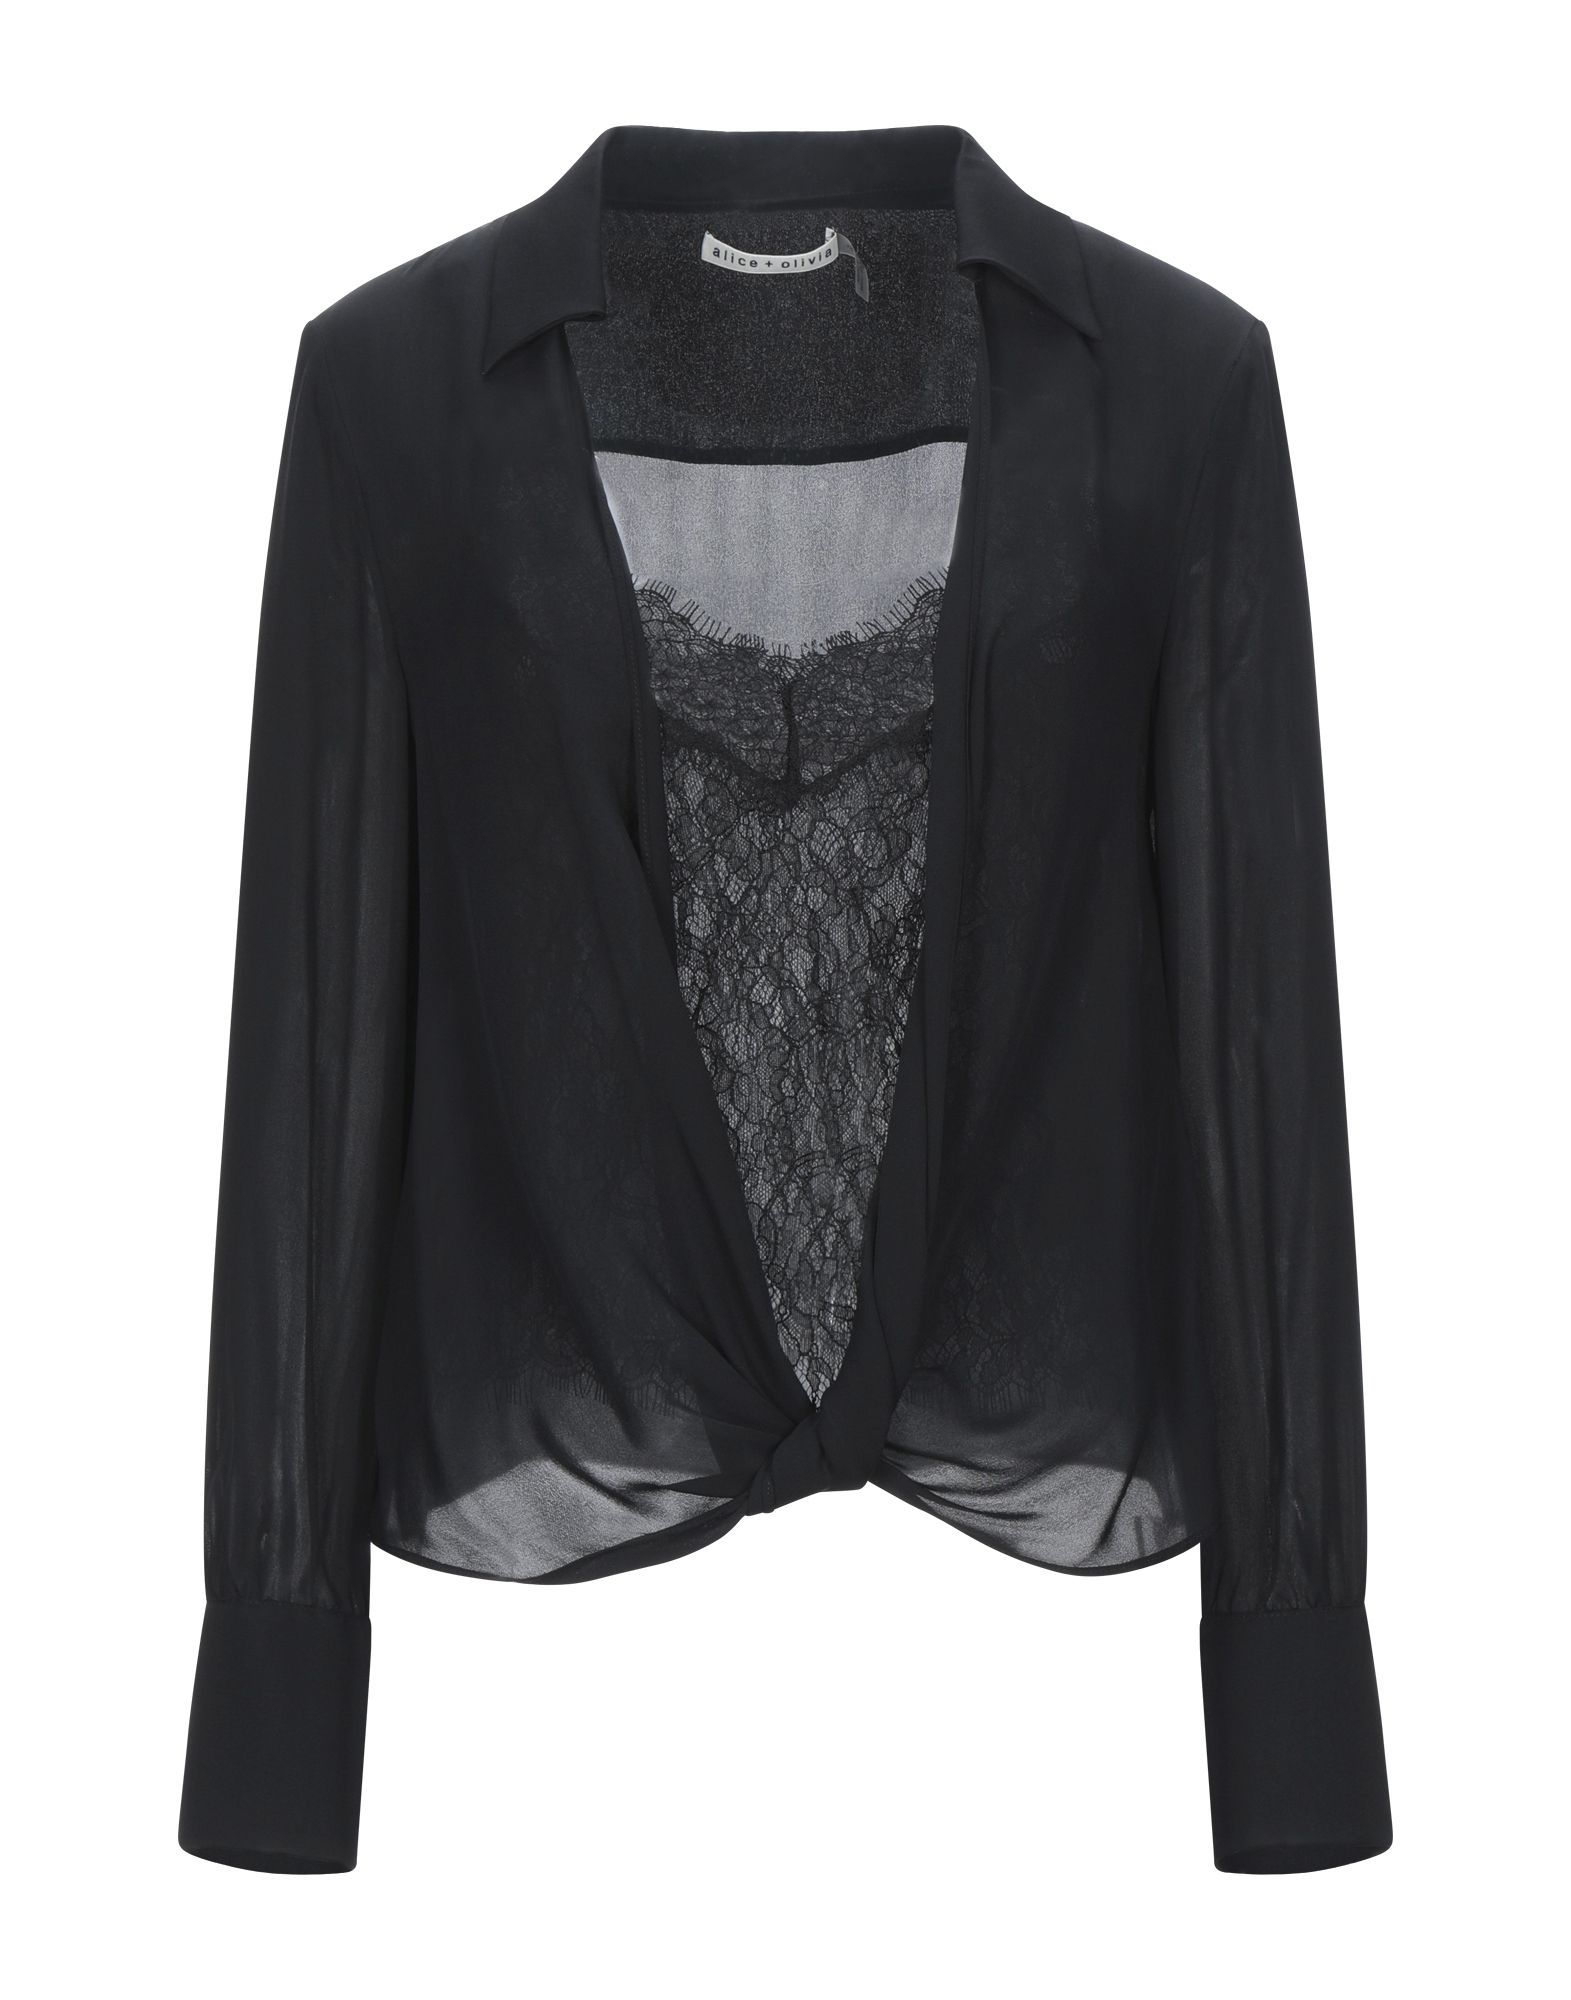 ALICE + OLIVIA Blouses. lace, chiffon, no appliqués, basic solid color, long sleeves, buttoned cuffs, v-neck, detachable lining, no pockets. 100% Silk